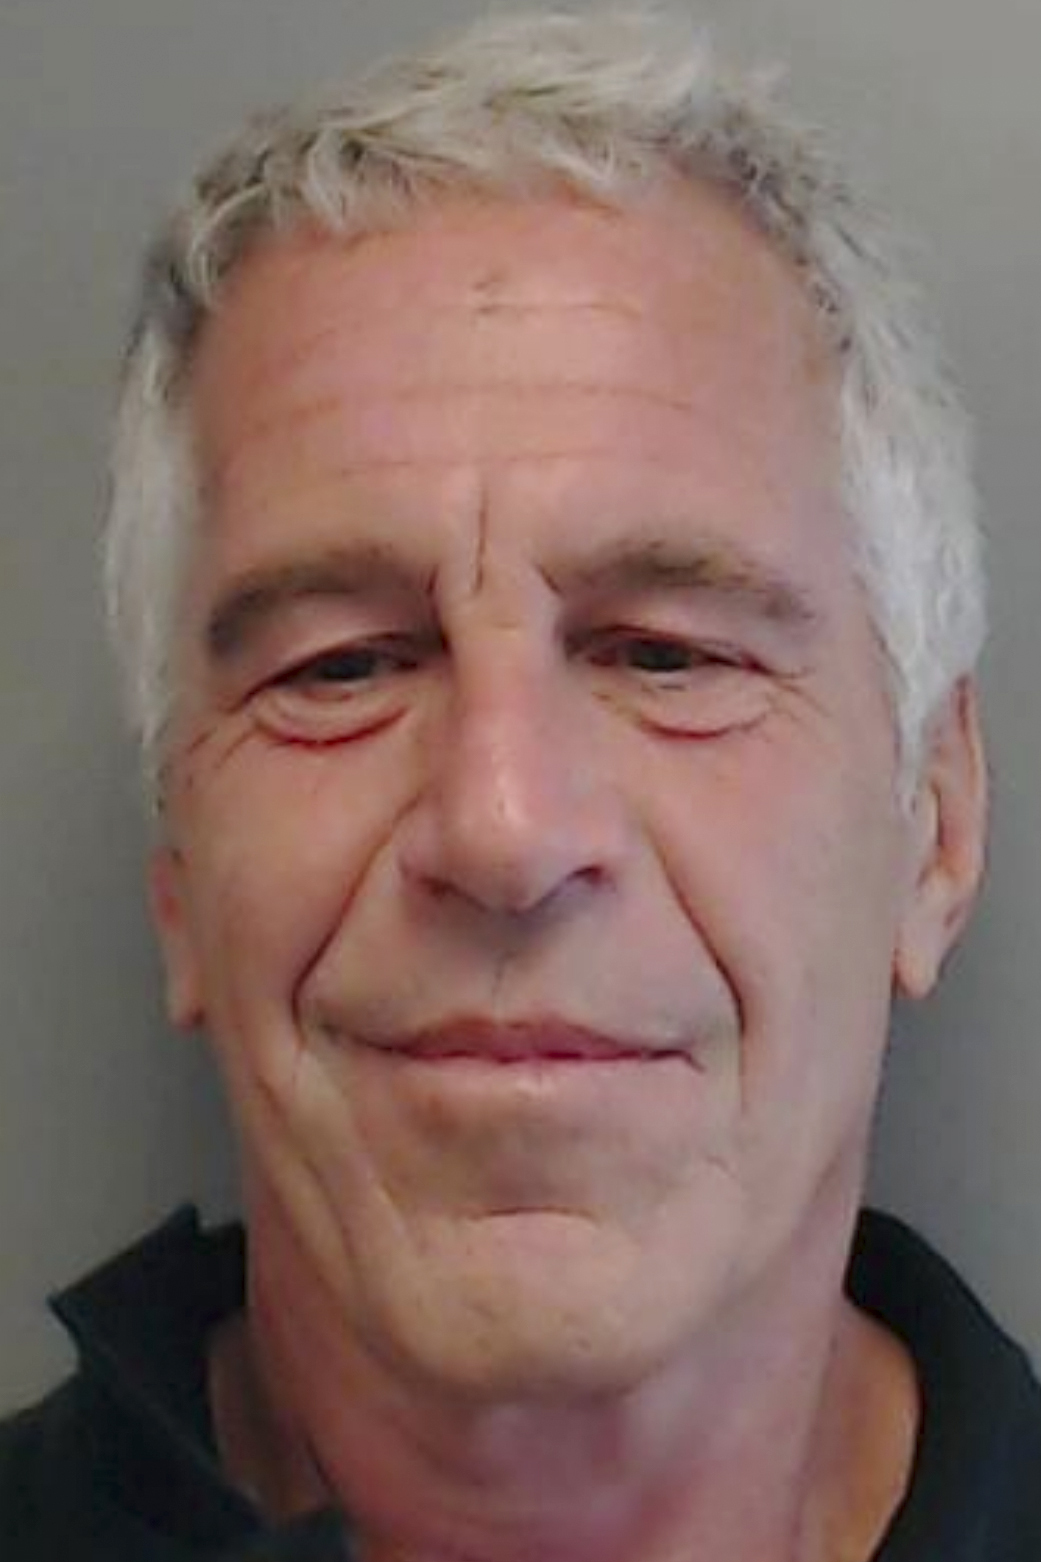 Westlake Legal Group ContentBroker_contentid-b3b665a578e344d2a21e99c4c92131c1 Jeffrey Epstein arranged for sex with 18-year-old while on work release from jail: lawsuit fox-news/us/us-regions/southeast/florida fox-news/us/us-regions/northeast/new-york fox-news/us/crime/sex-crimes fox-news/person/jeffrey-epstein fox news fnc/us fnc Danielle Wallace article 7edefb93-8128-5922-9eea-51b1ec462094